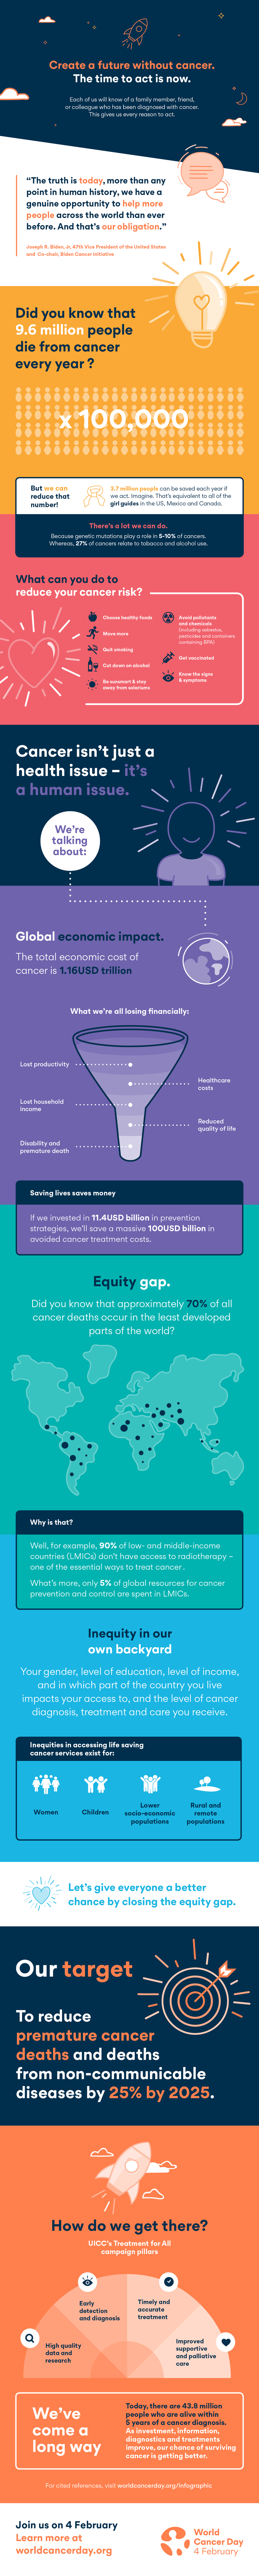 World Cancer Day Infographic 2019